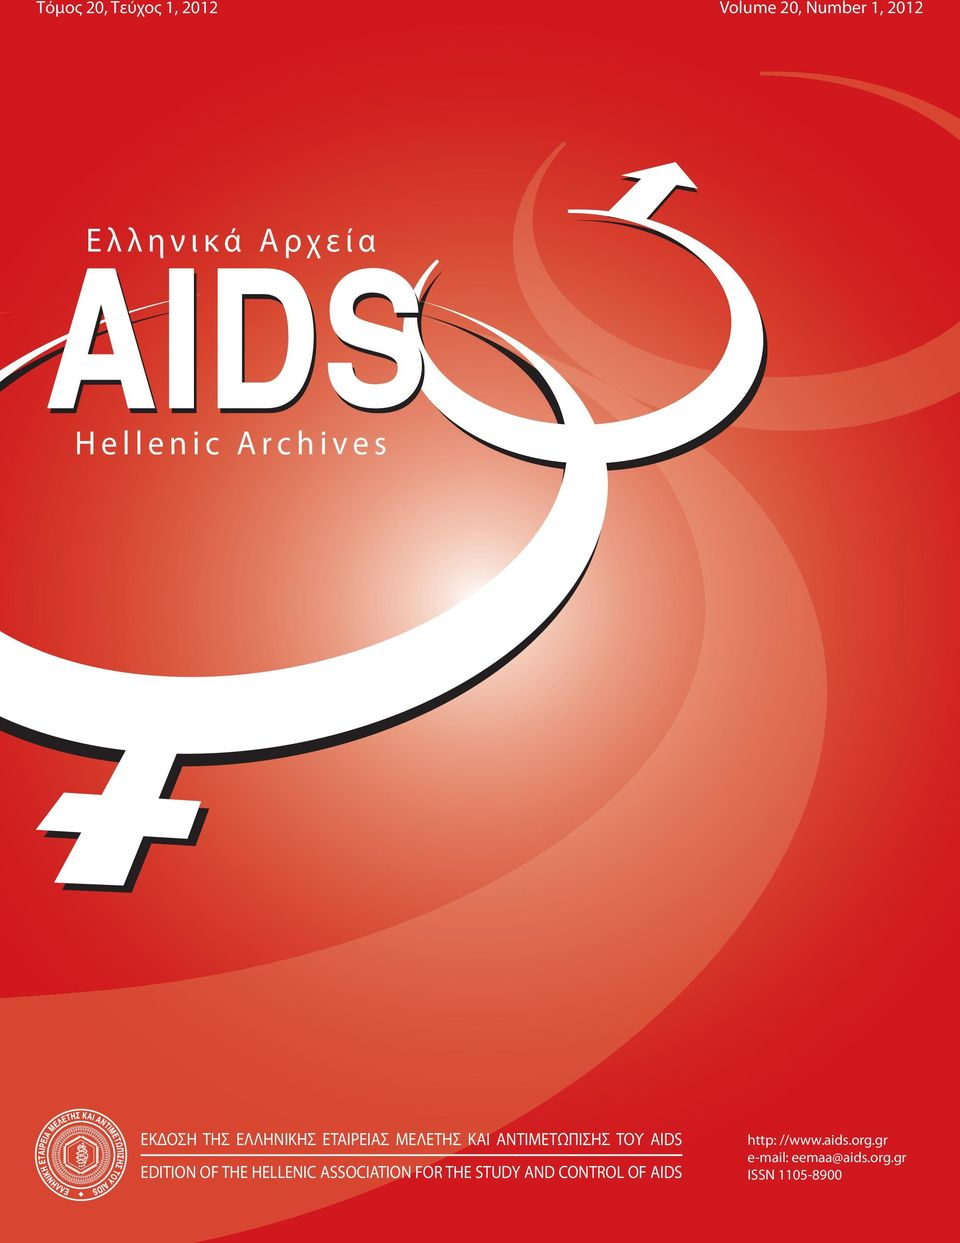 ΑΝΤΙΜΕΤΩΠΙΣΗΣ ΤΟΥ AIDS EDITION OF THE HELLENIC ASSOCIATION FOR THE STUDY